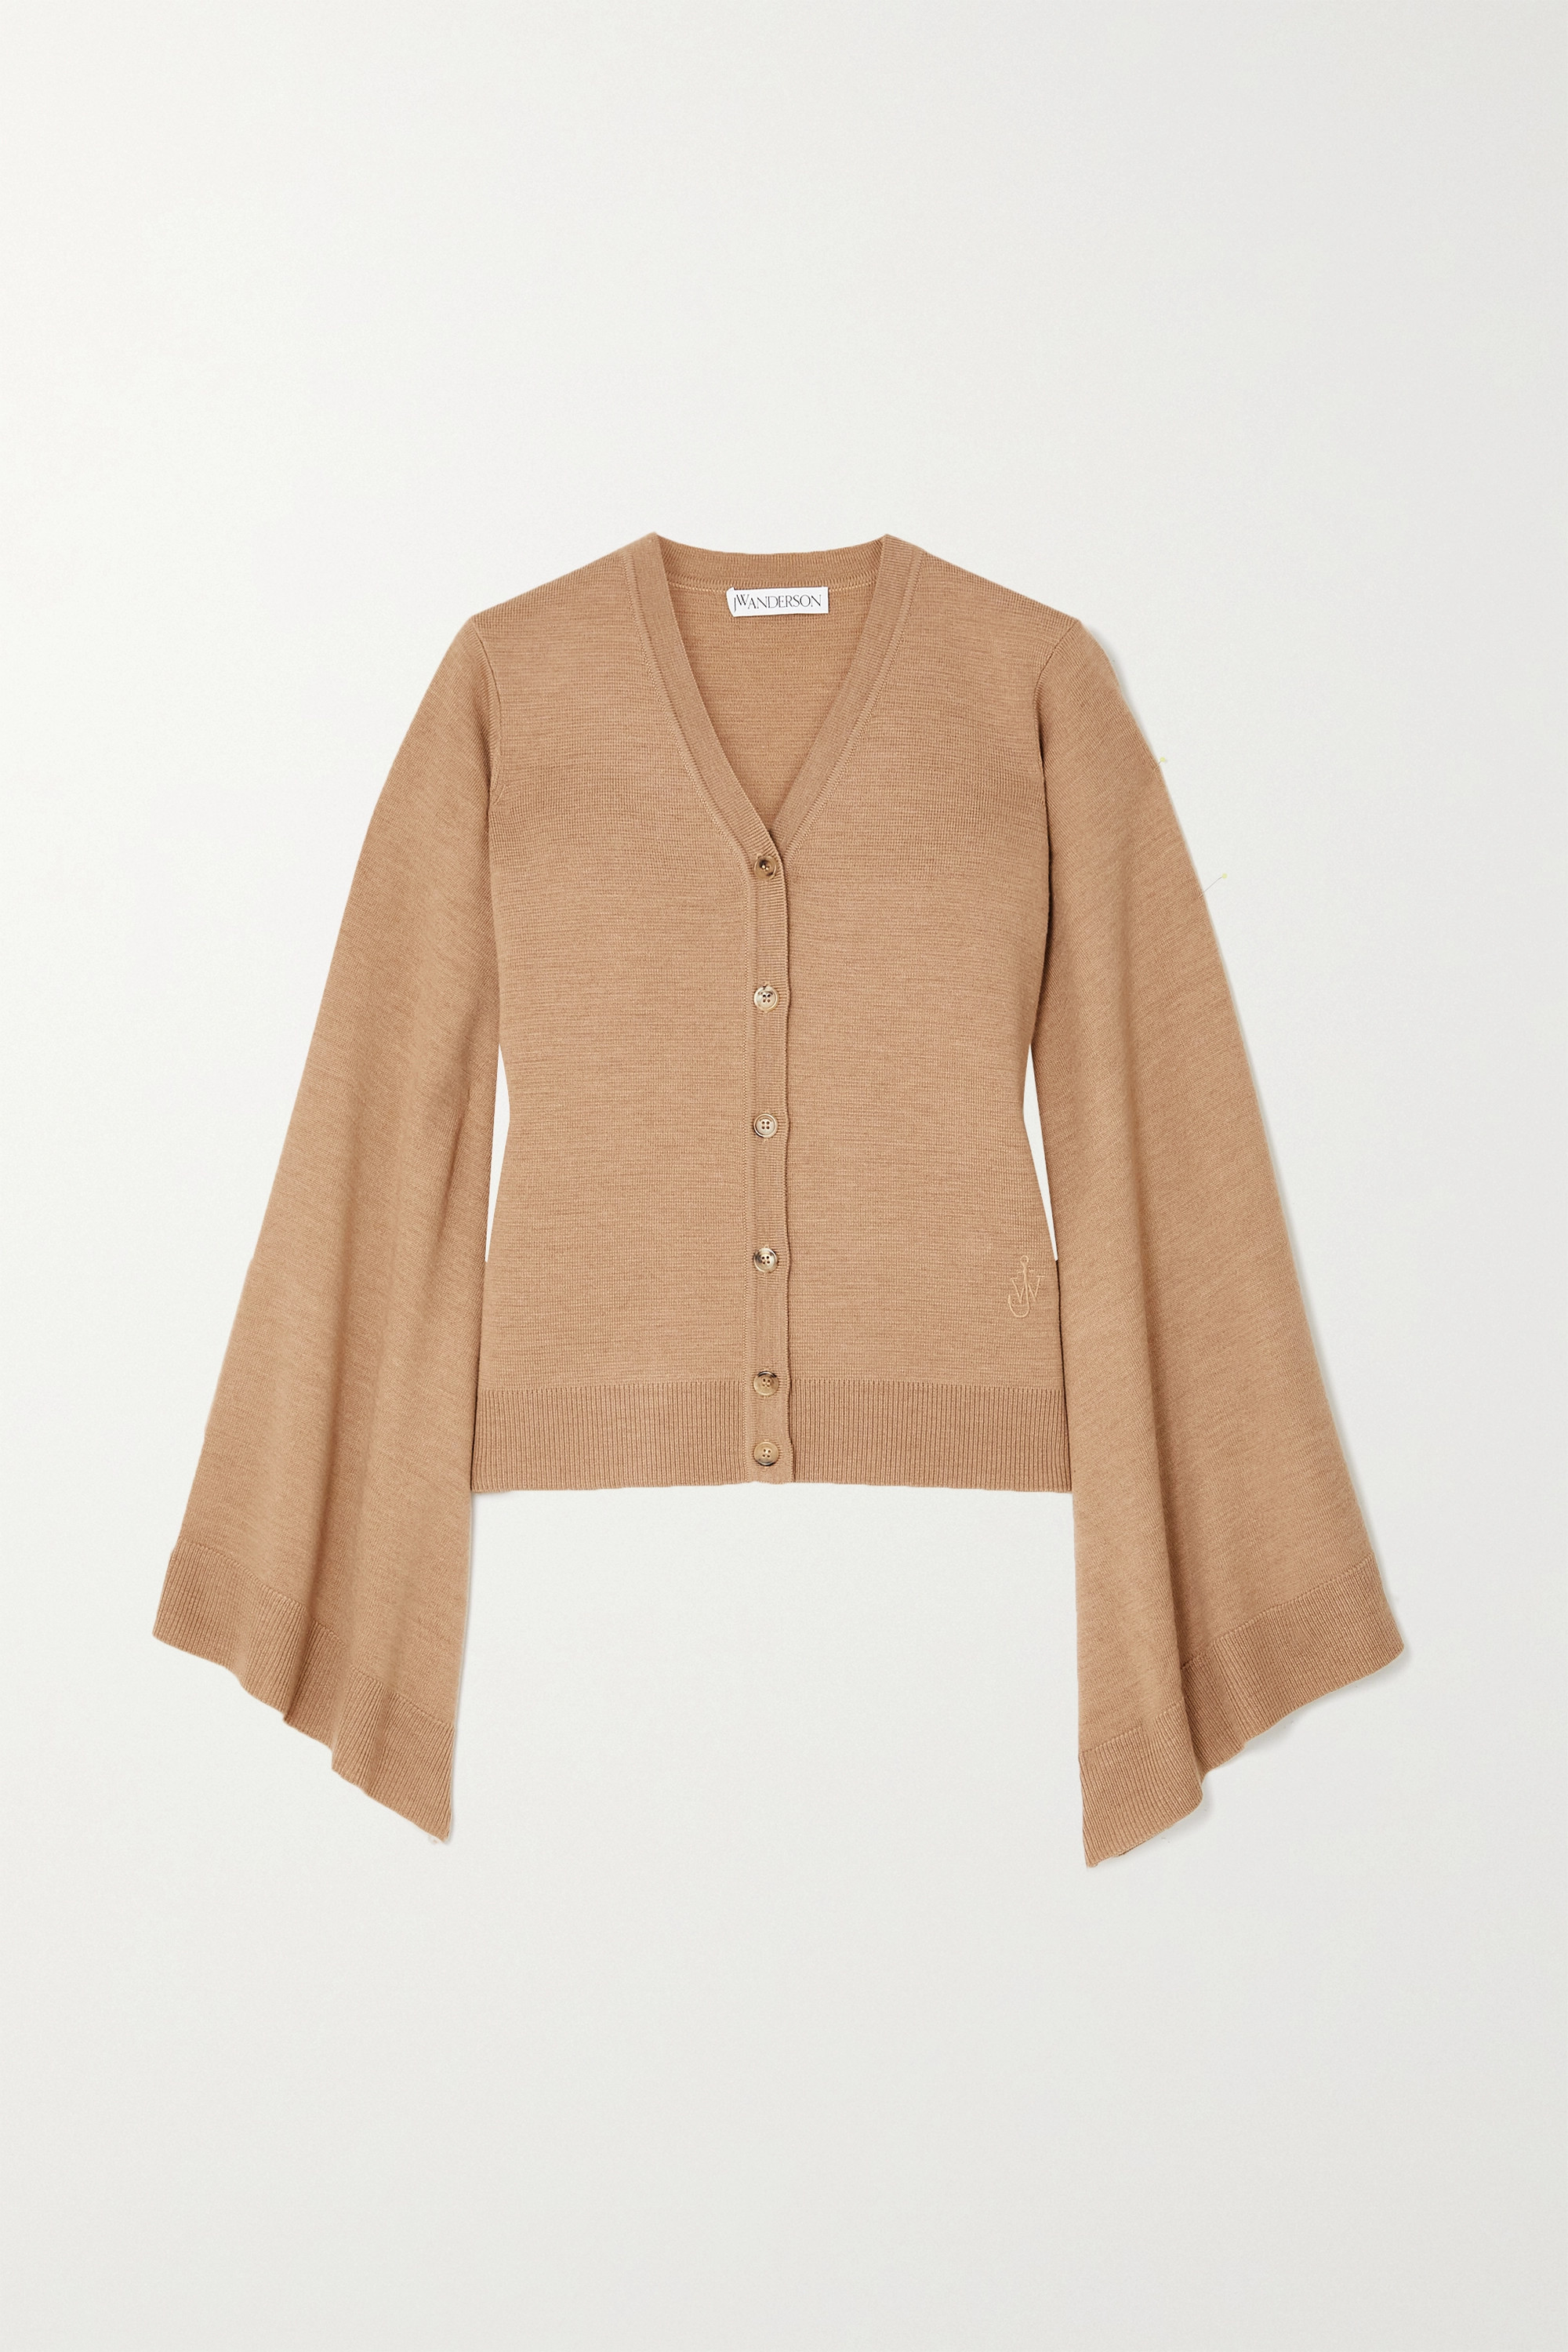 JW Anderson Wing draped merino wool cardigan